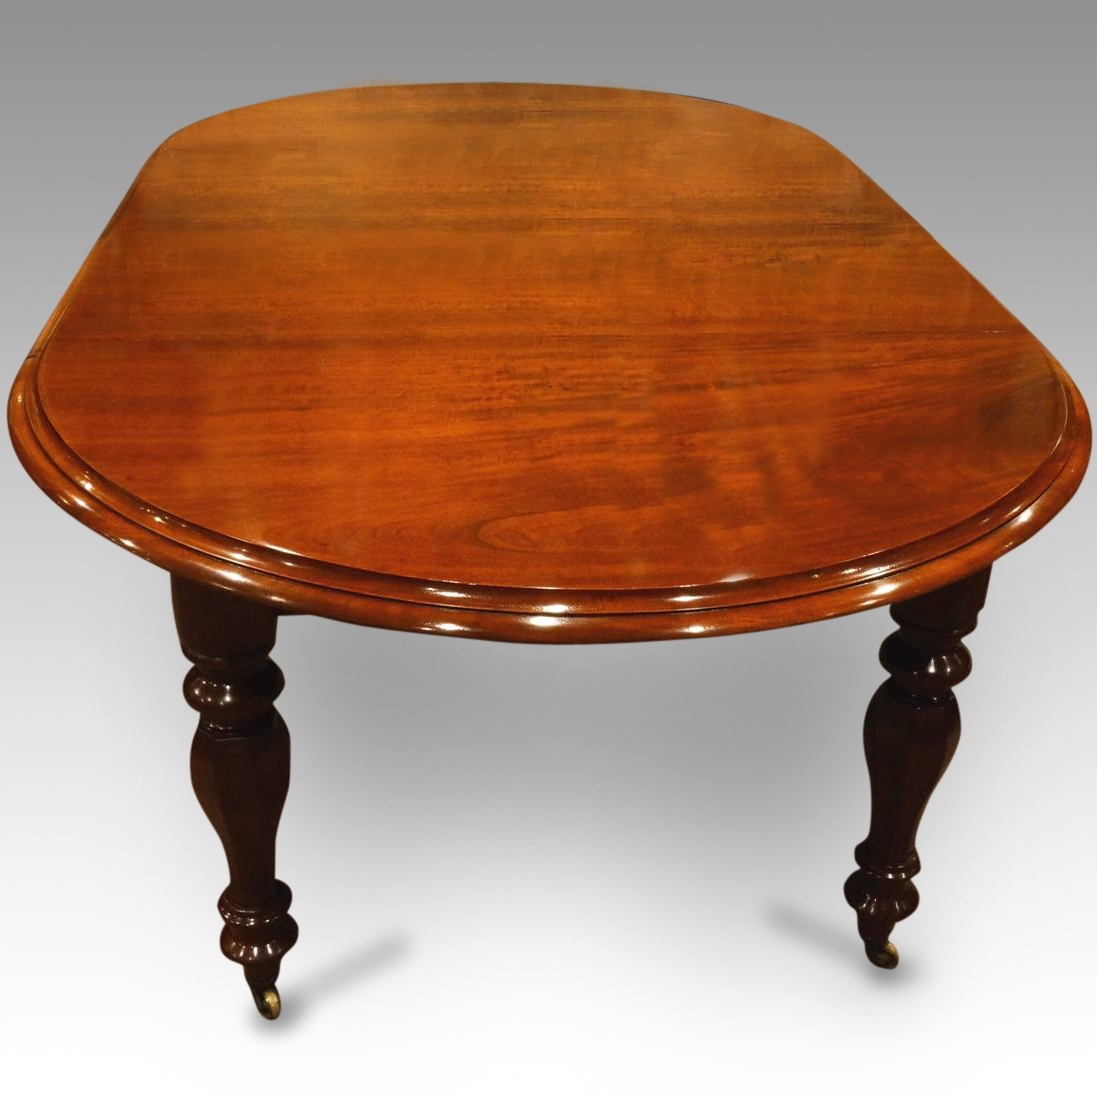 Most Popular Victorian Mahogany Extending Circular Dining Table Now Sold Inside Mahogany Extending Dining Tables (View 18 of 25)